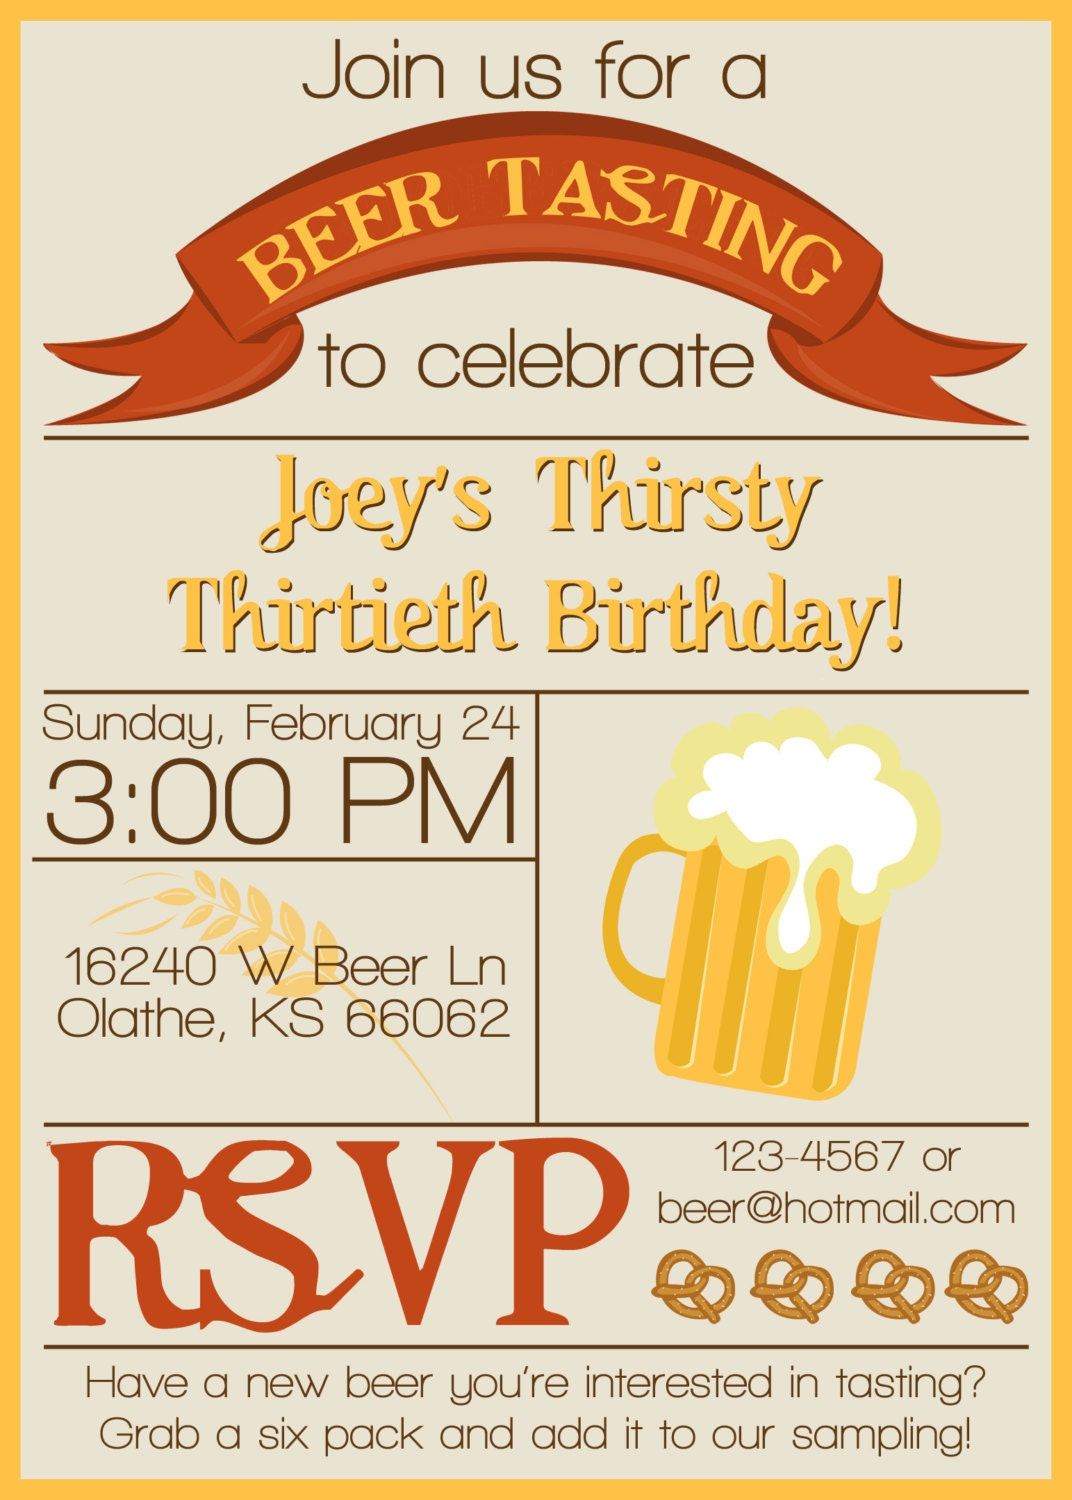 Beer Tasting Birthday Party Invitations images – Beer Party Invitations